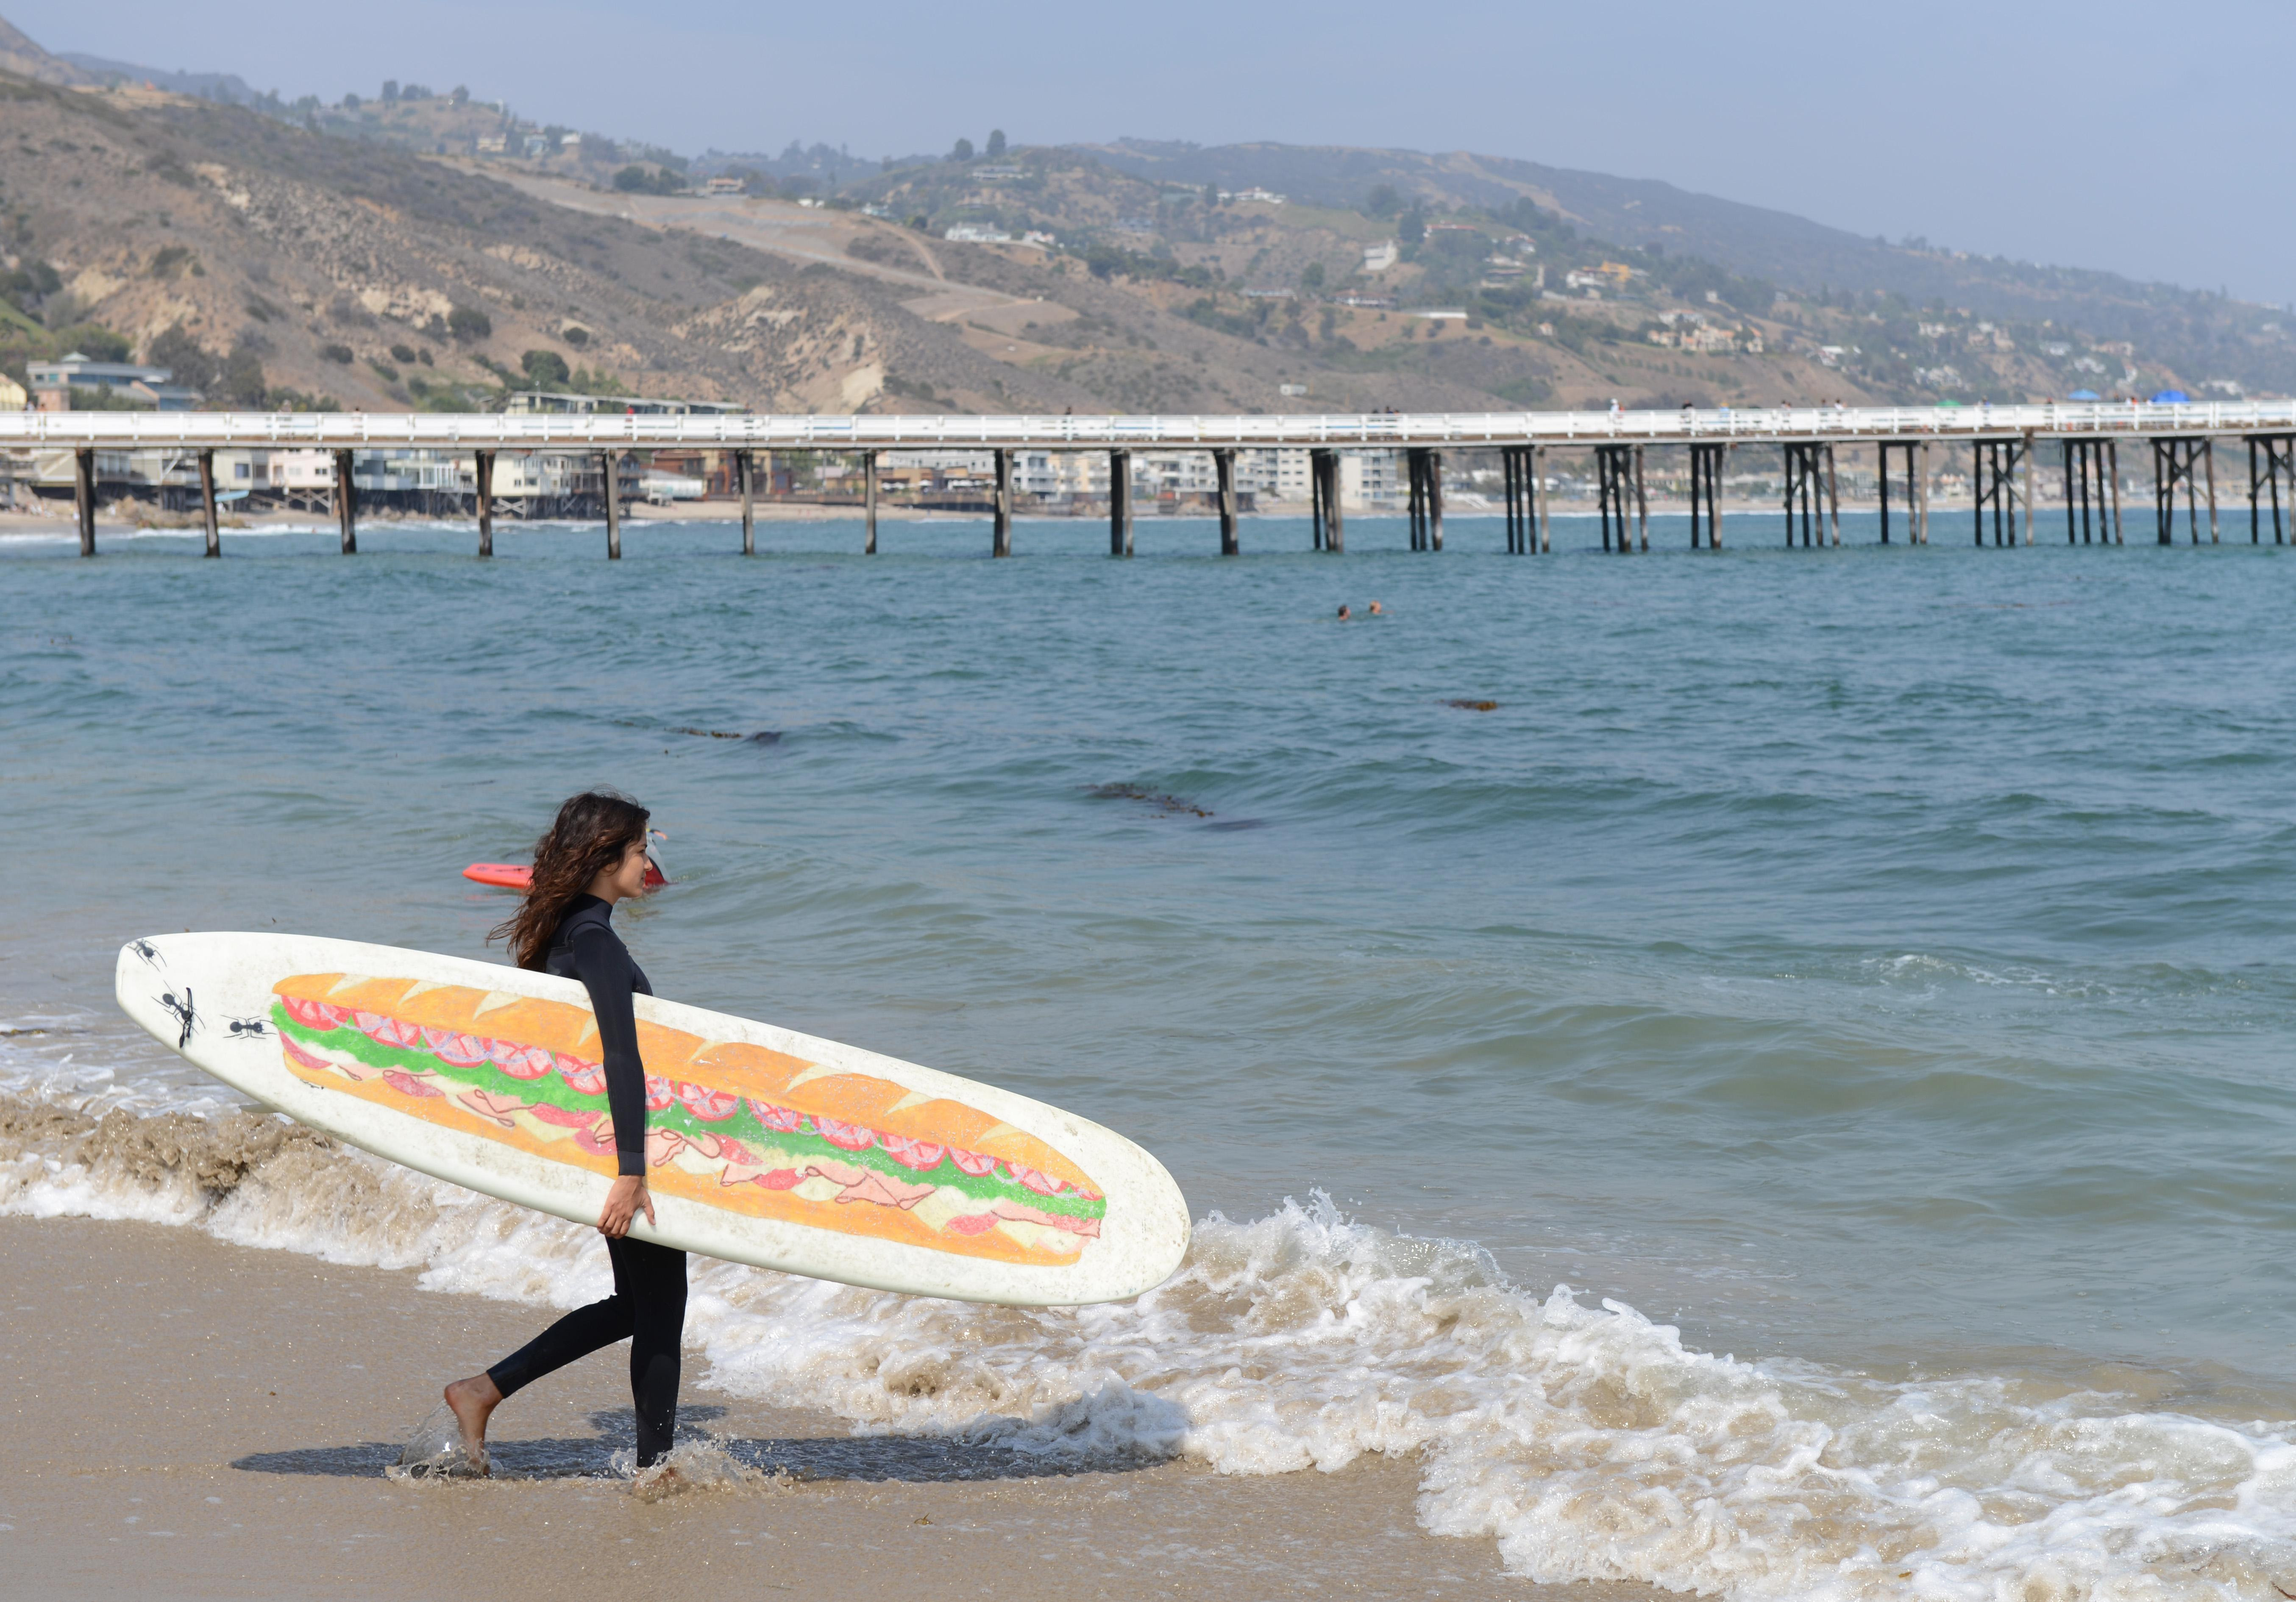 Things to Do in Los Angeles This Summer